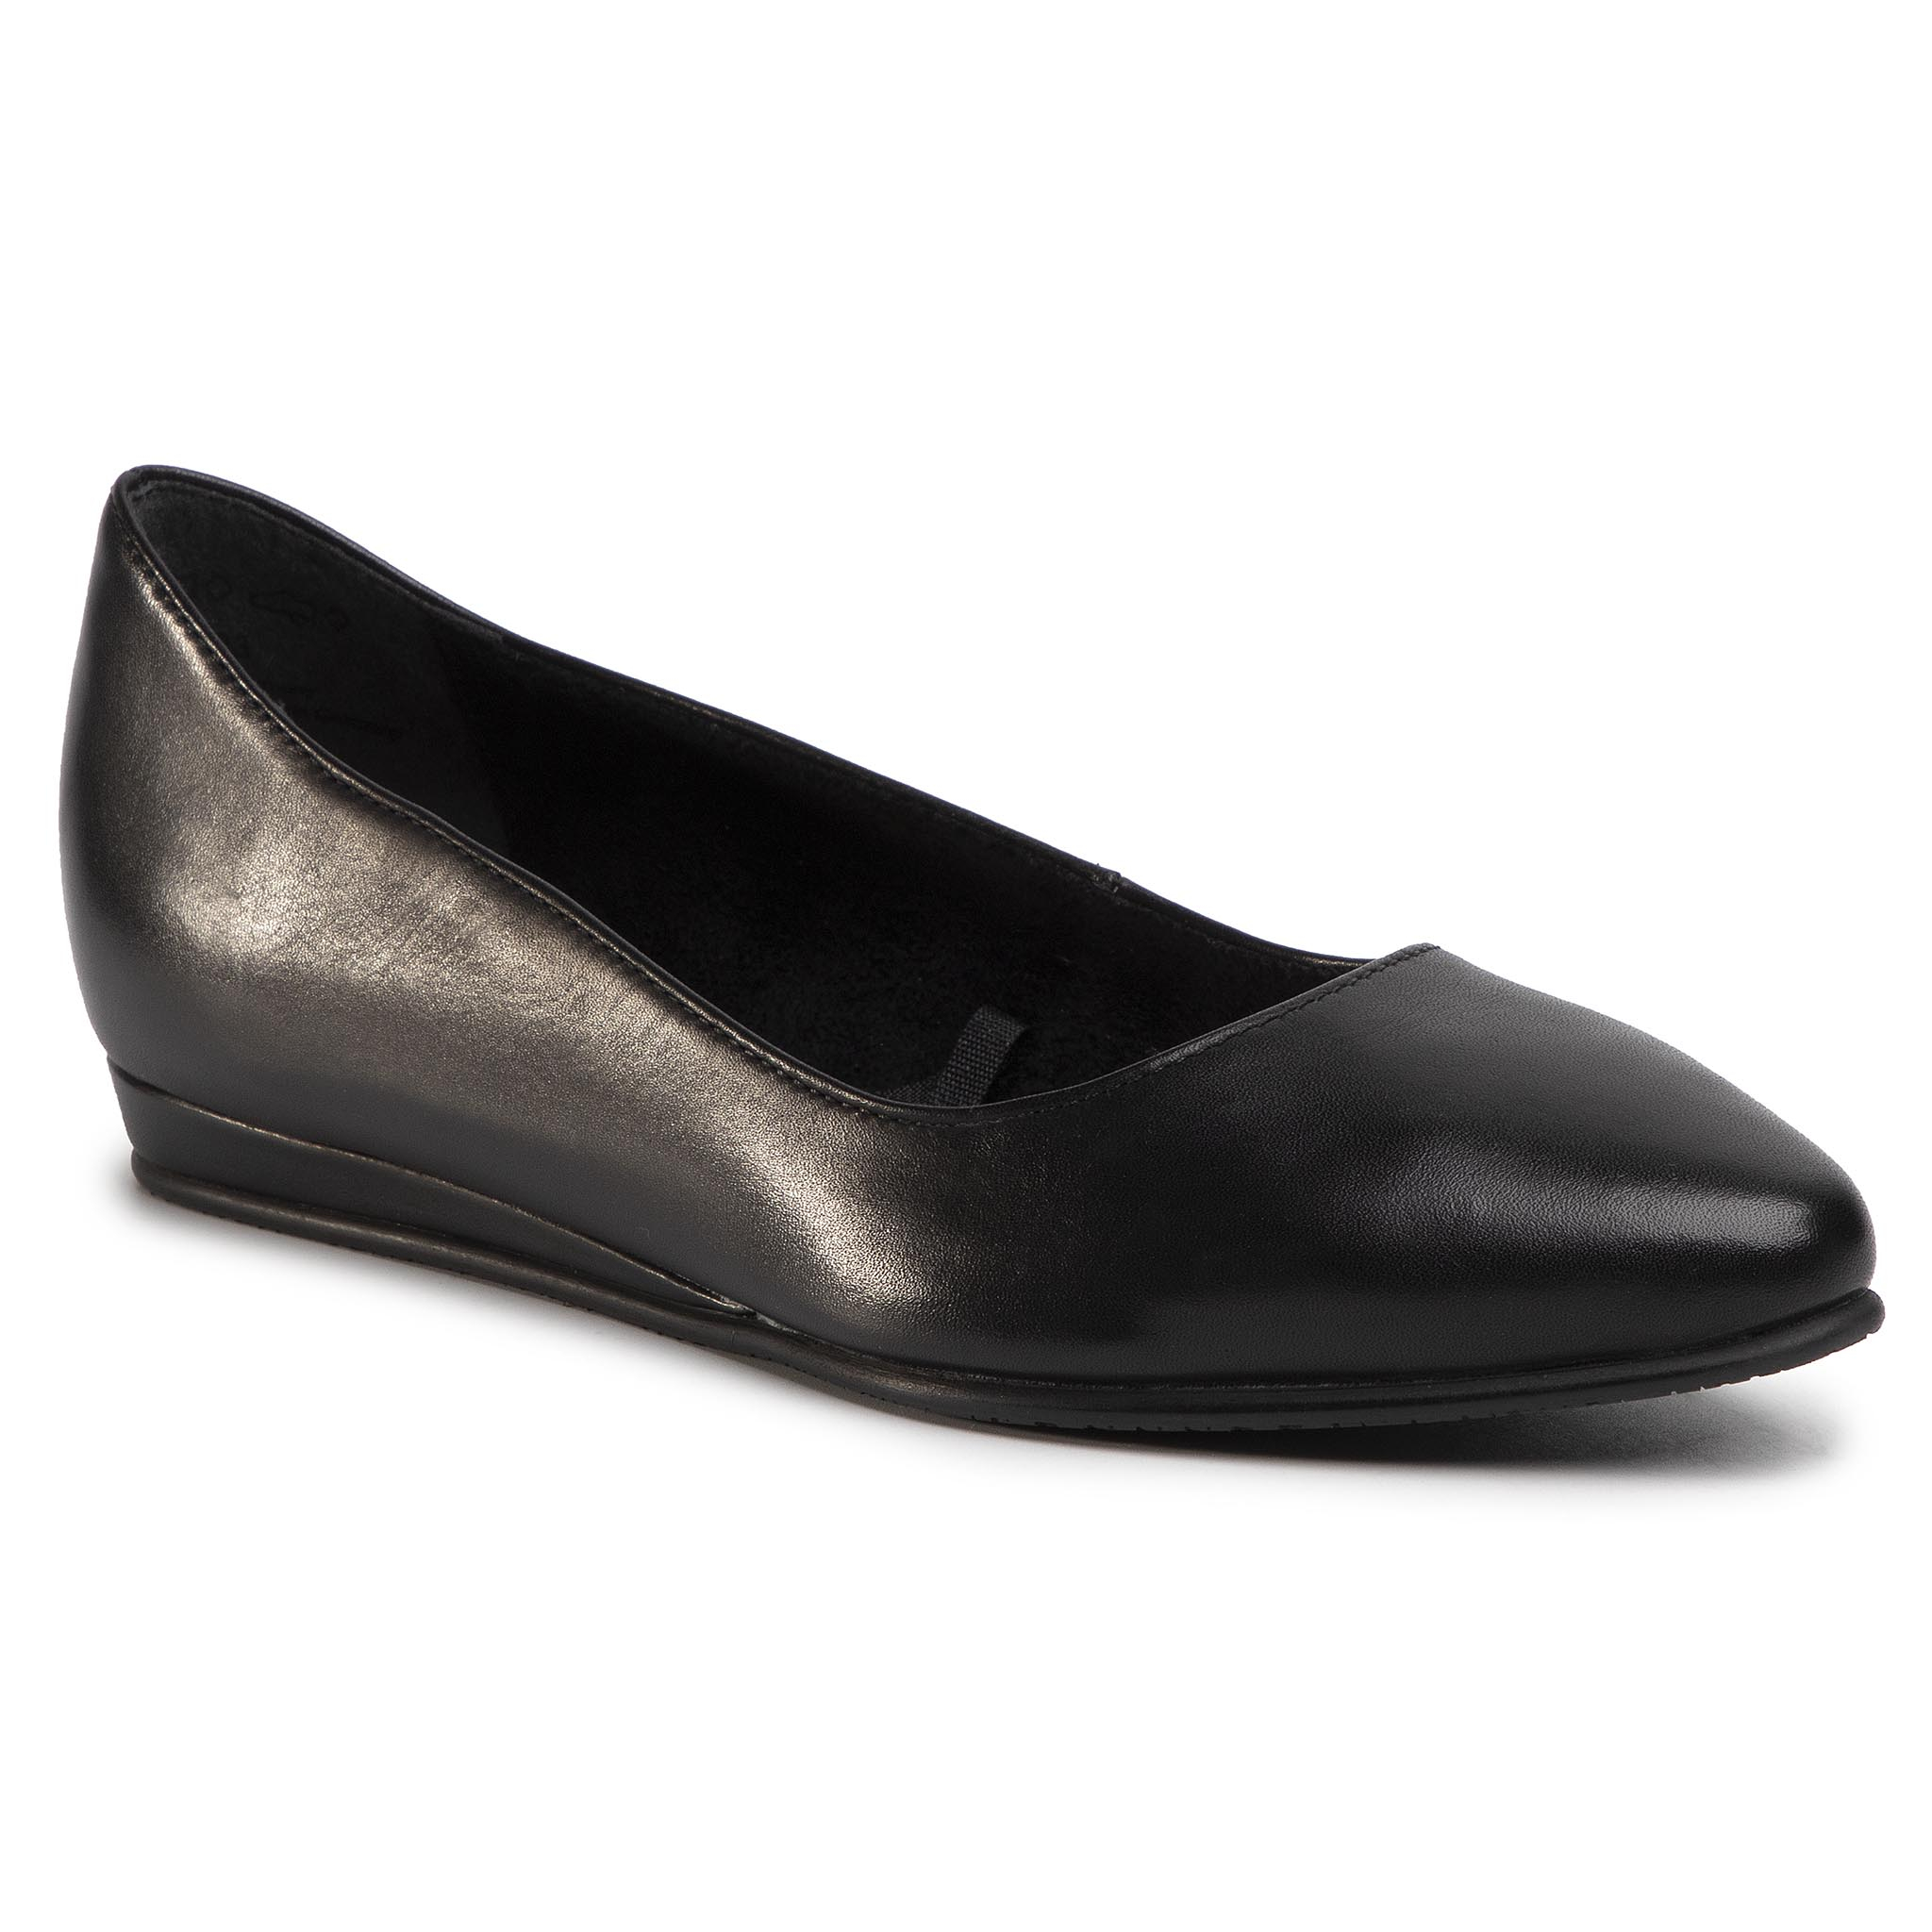 Balerini Tamaris - 1-22118-24 Black Leather 003 imagine epantofi.ro